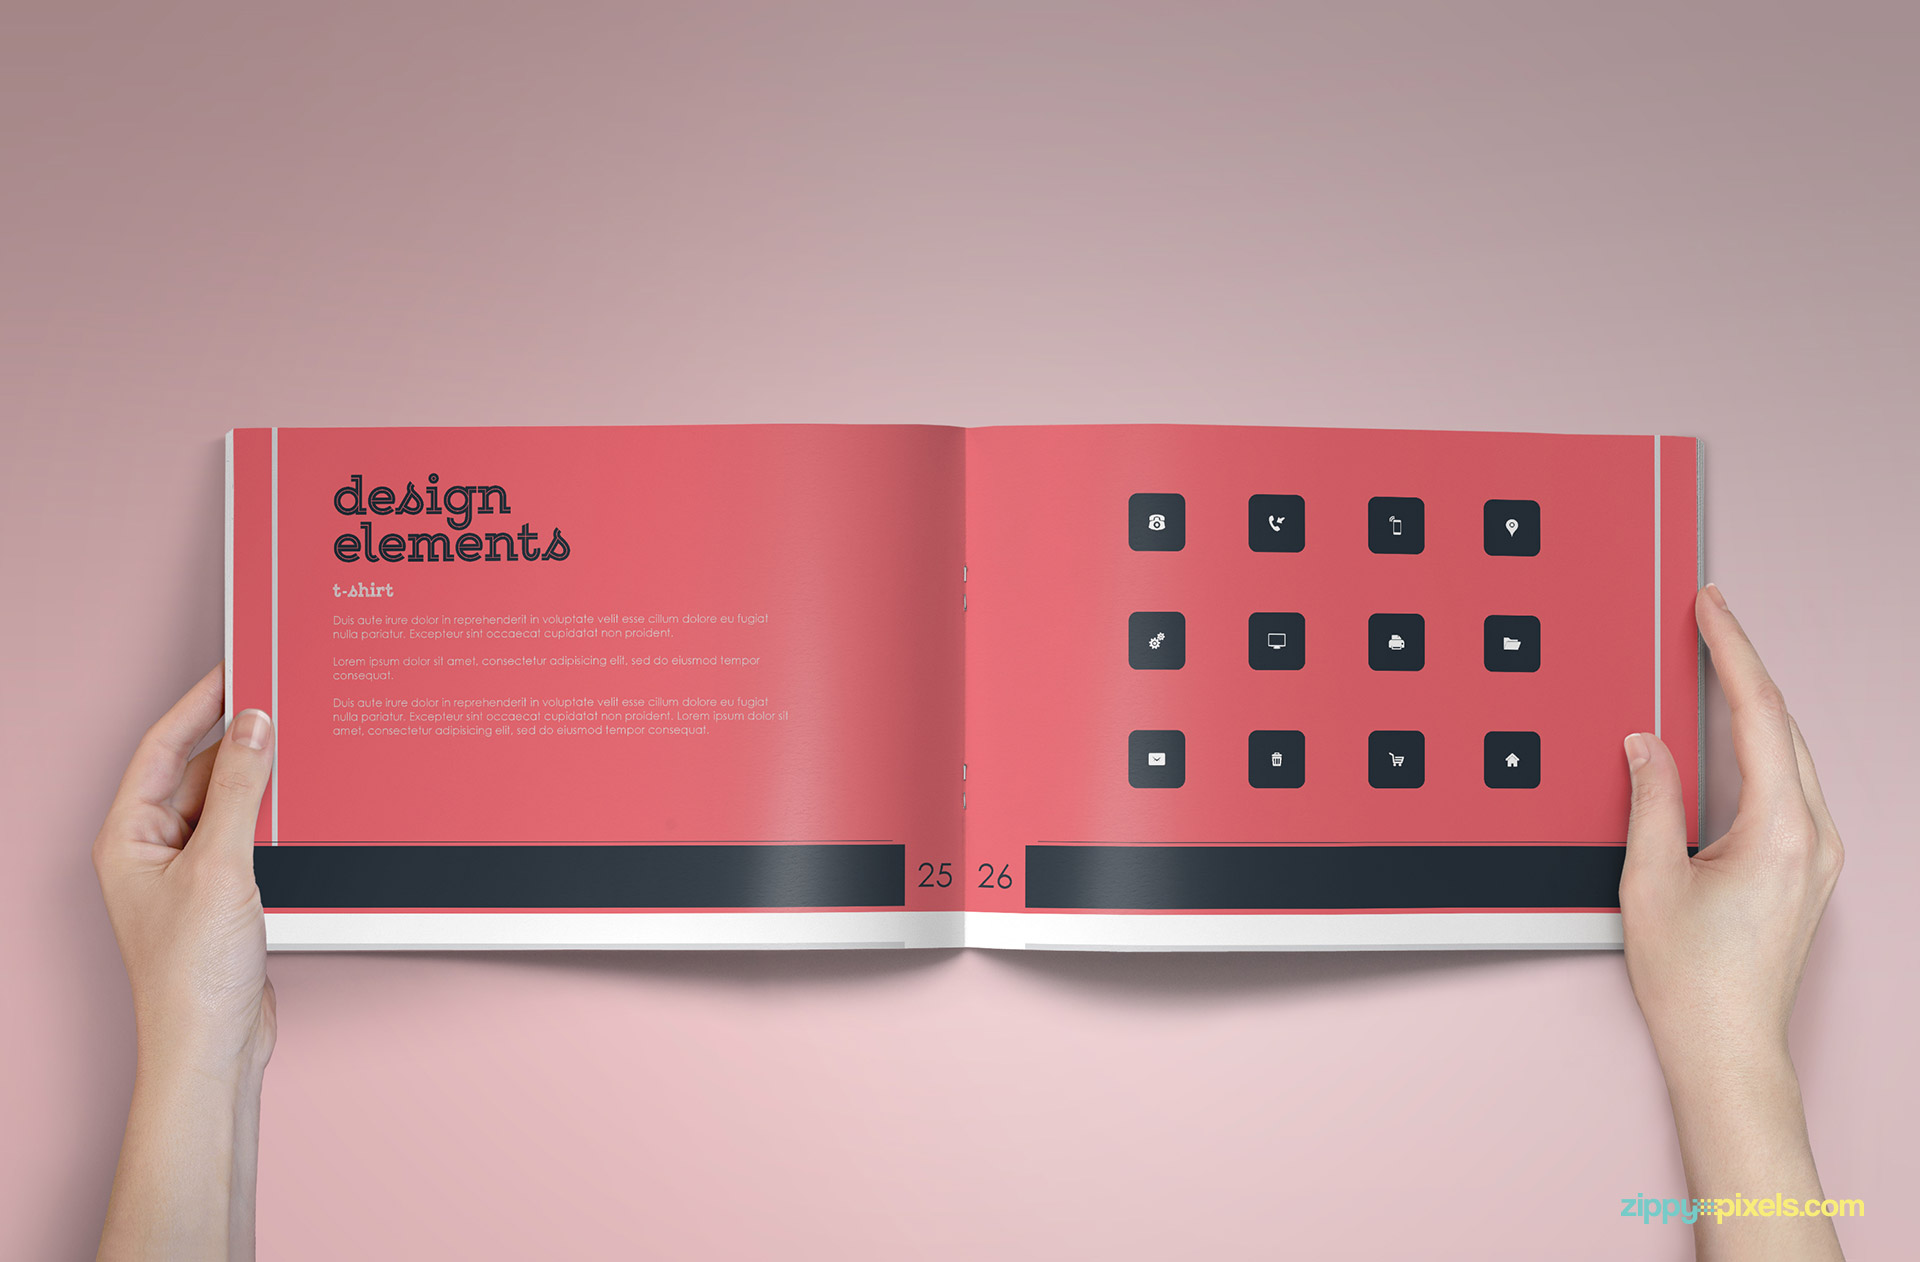 18-brand-book-8-design-elements